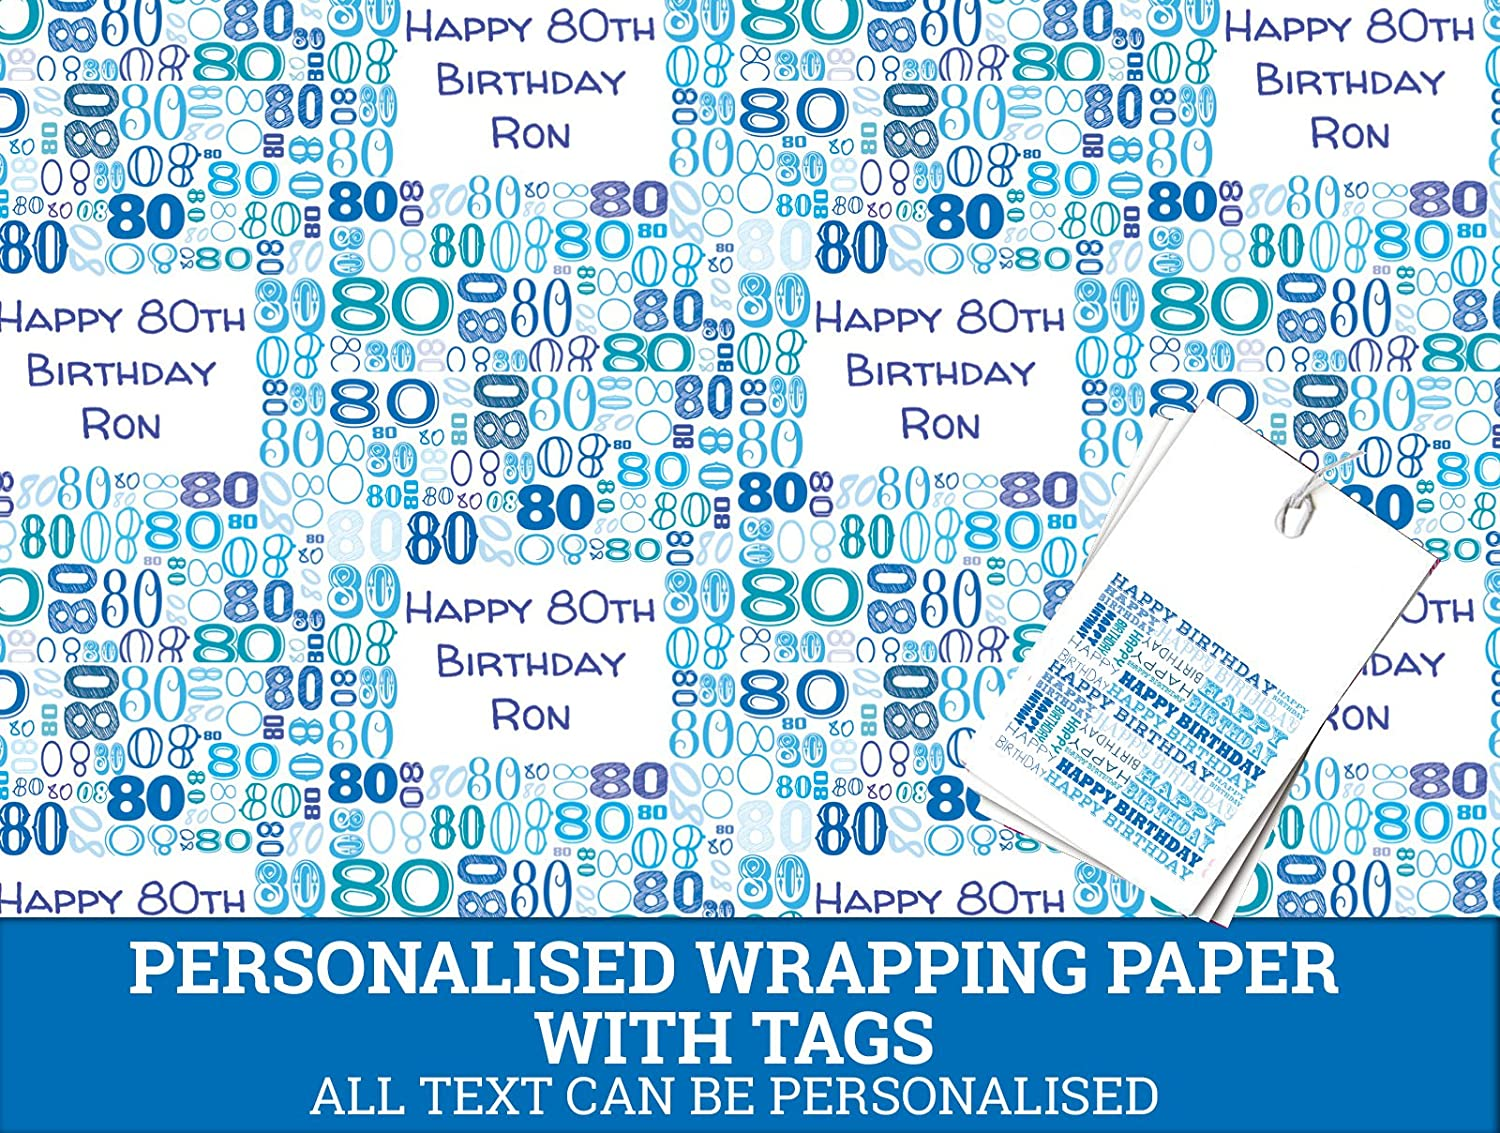 Blue Happy 80th Personalised Wrapping Paper - 590mm x 840mm Dom and Geri